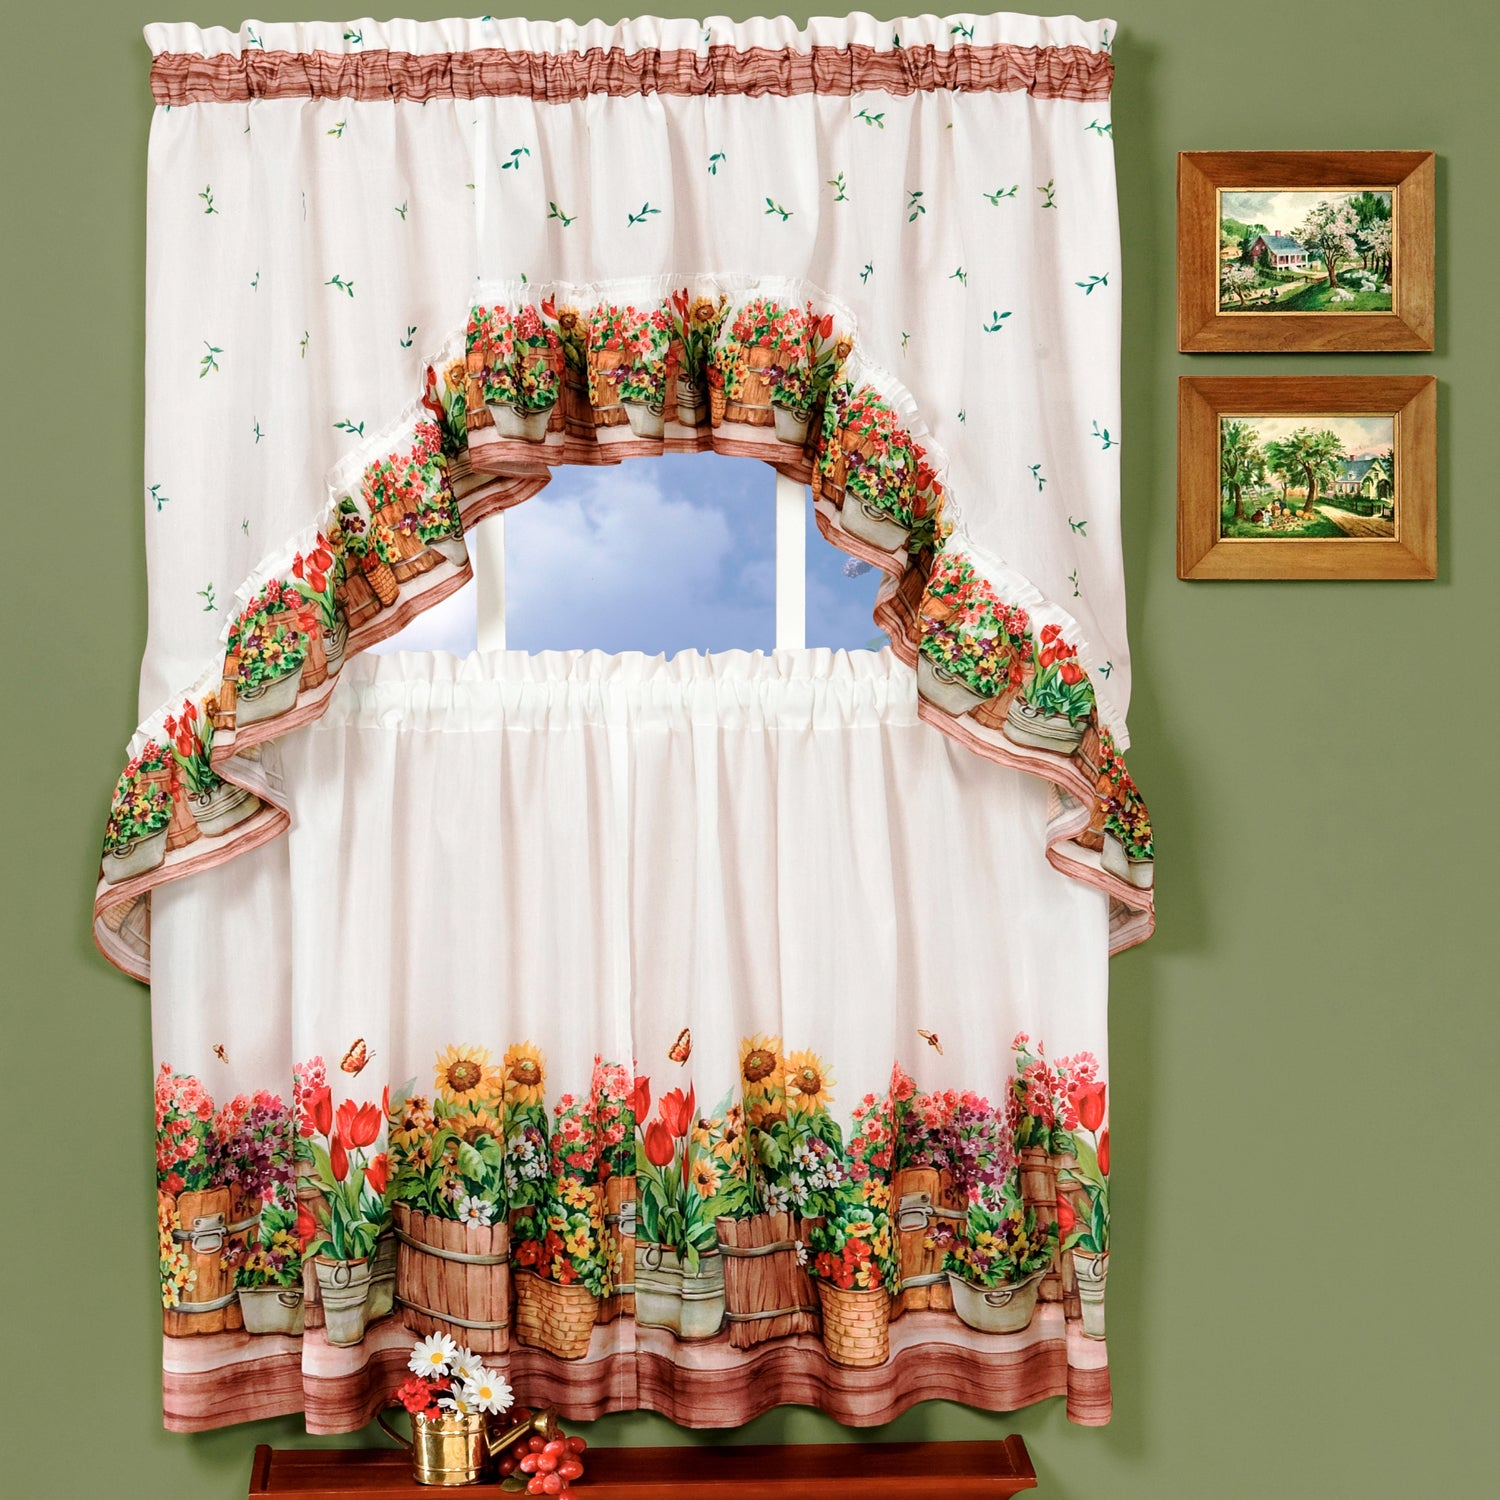 Traditional Two Piece Tailored Tier And Swag Window Curtains Set With Ornate Flower Garden Print – 36 Inch Intended For Window Curtains Sets With Colorful Marketplace Vegetable And Sunflower Print (View 6 of 20)